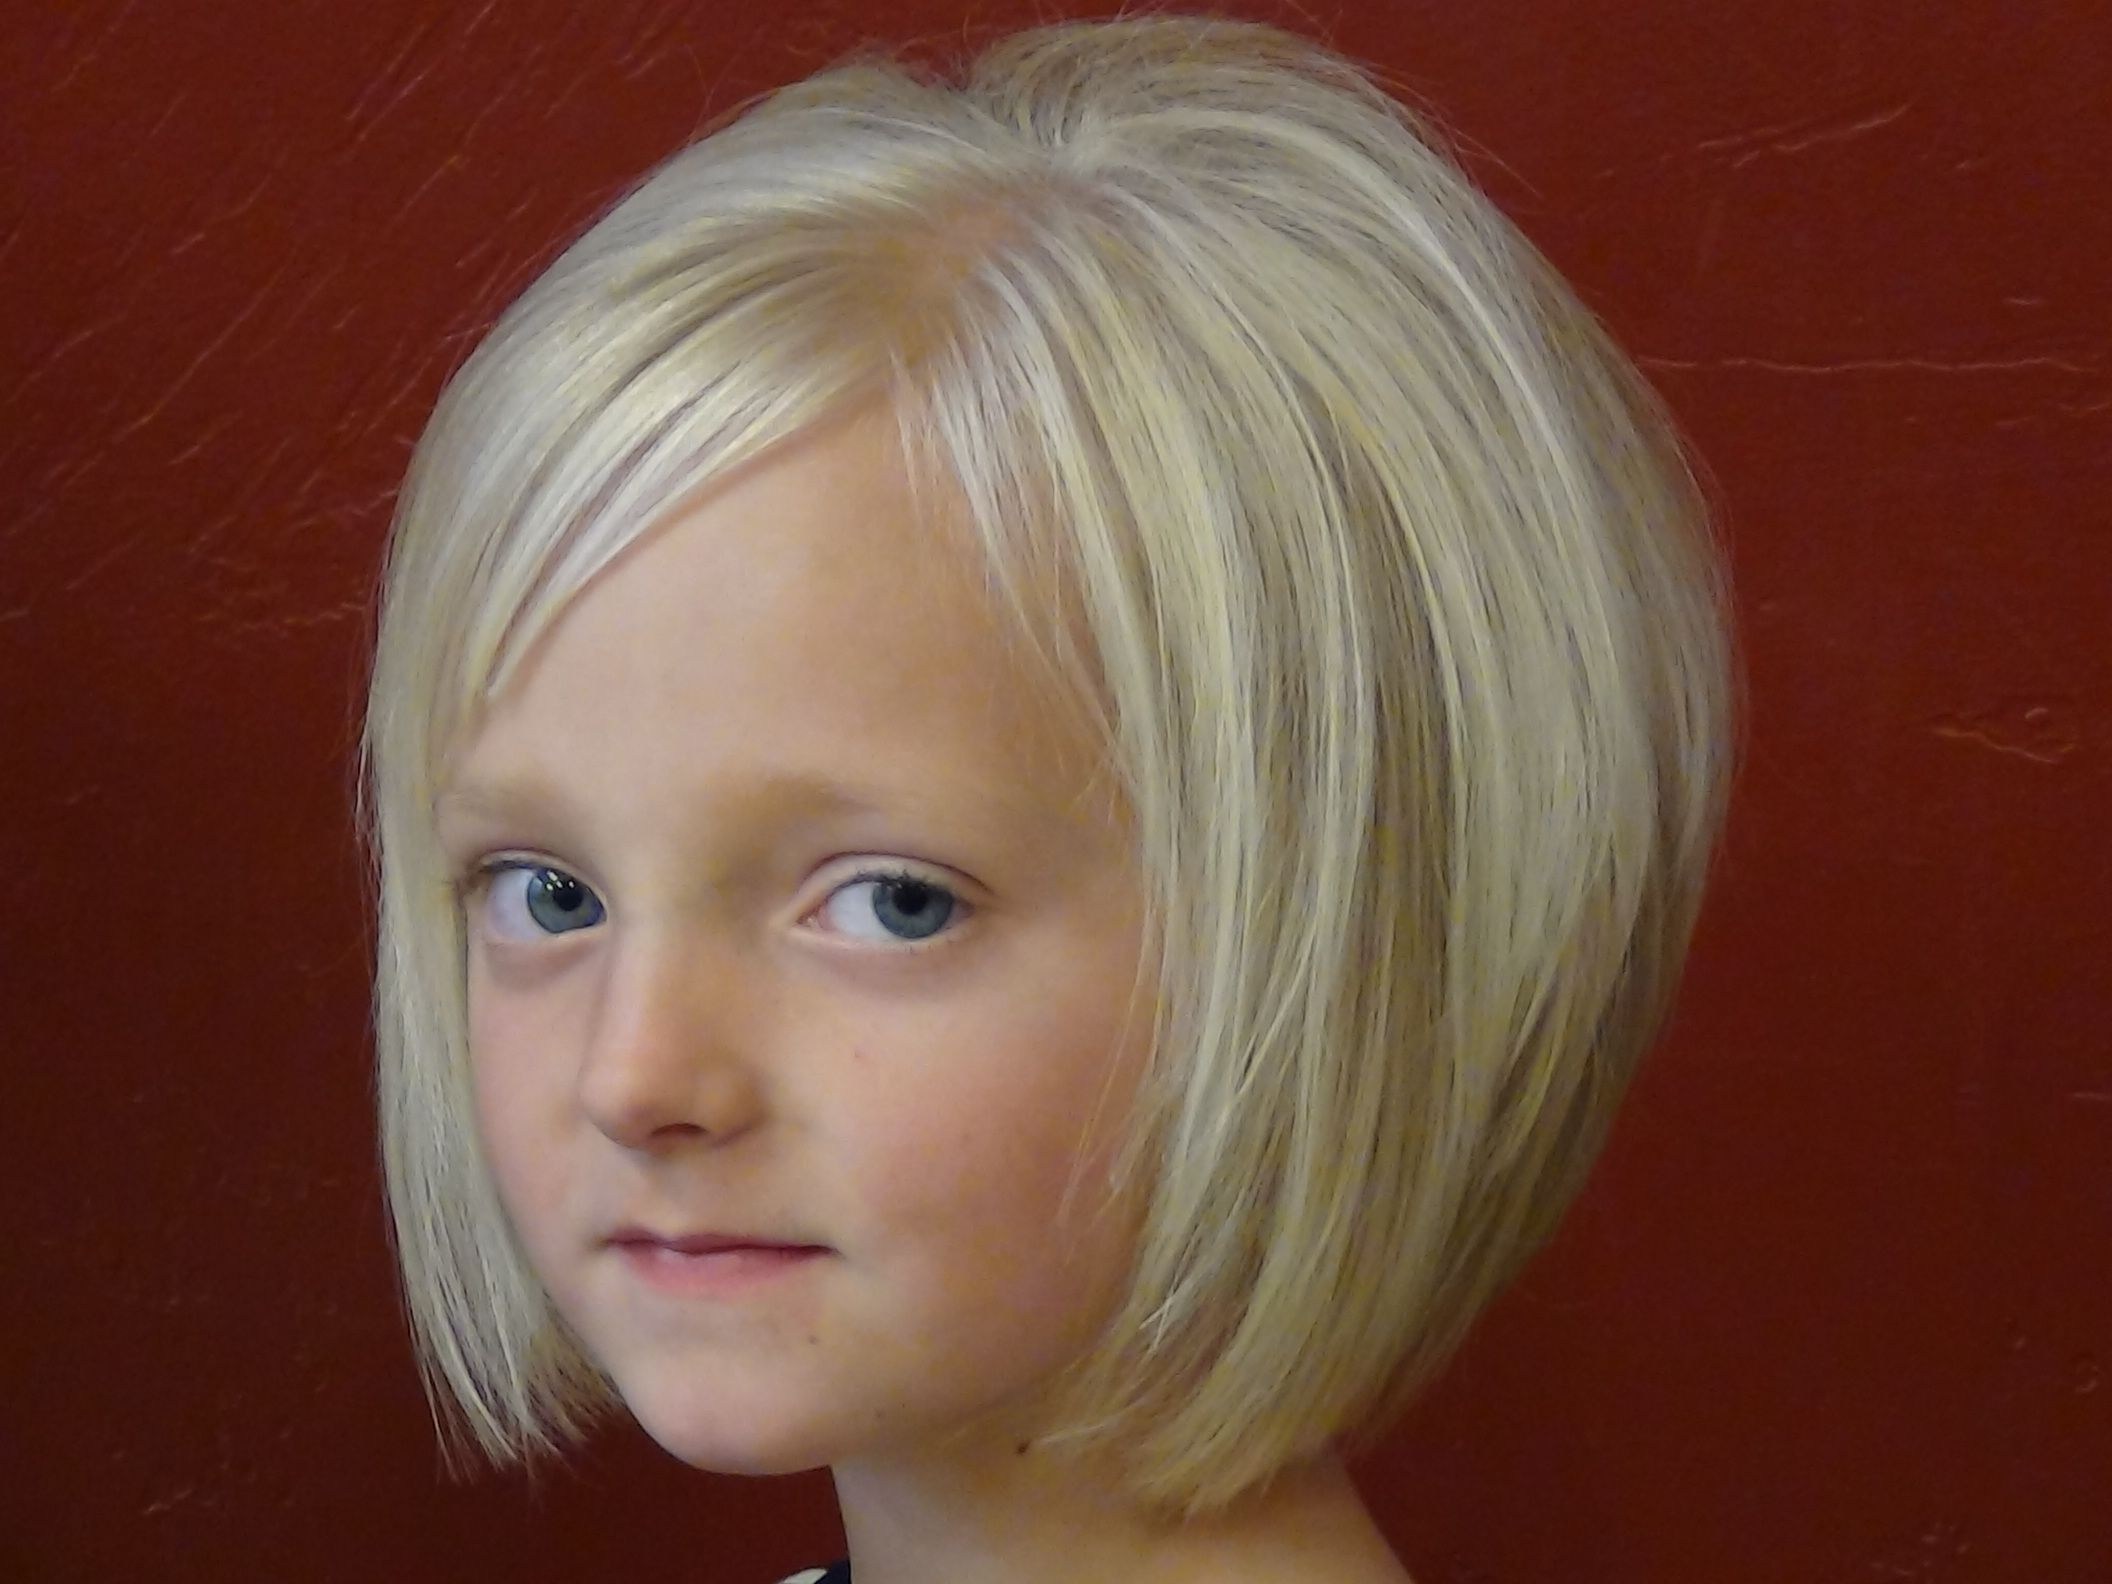 Groovy 1000 Images About Girls Haircuts On Pinterest Childrens Short Hairstyles For Black Women Fulllsitofus